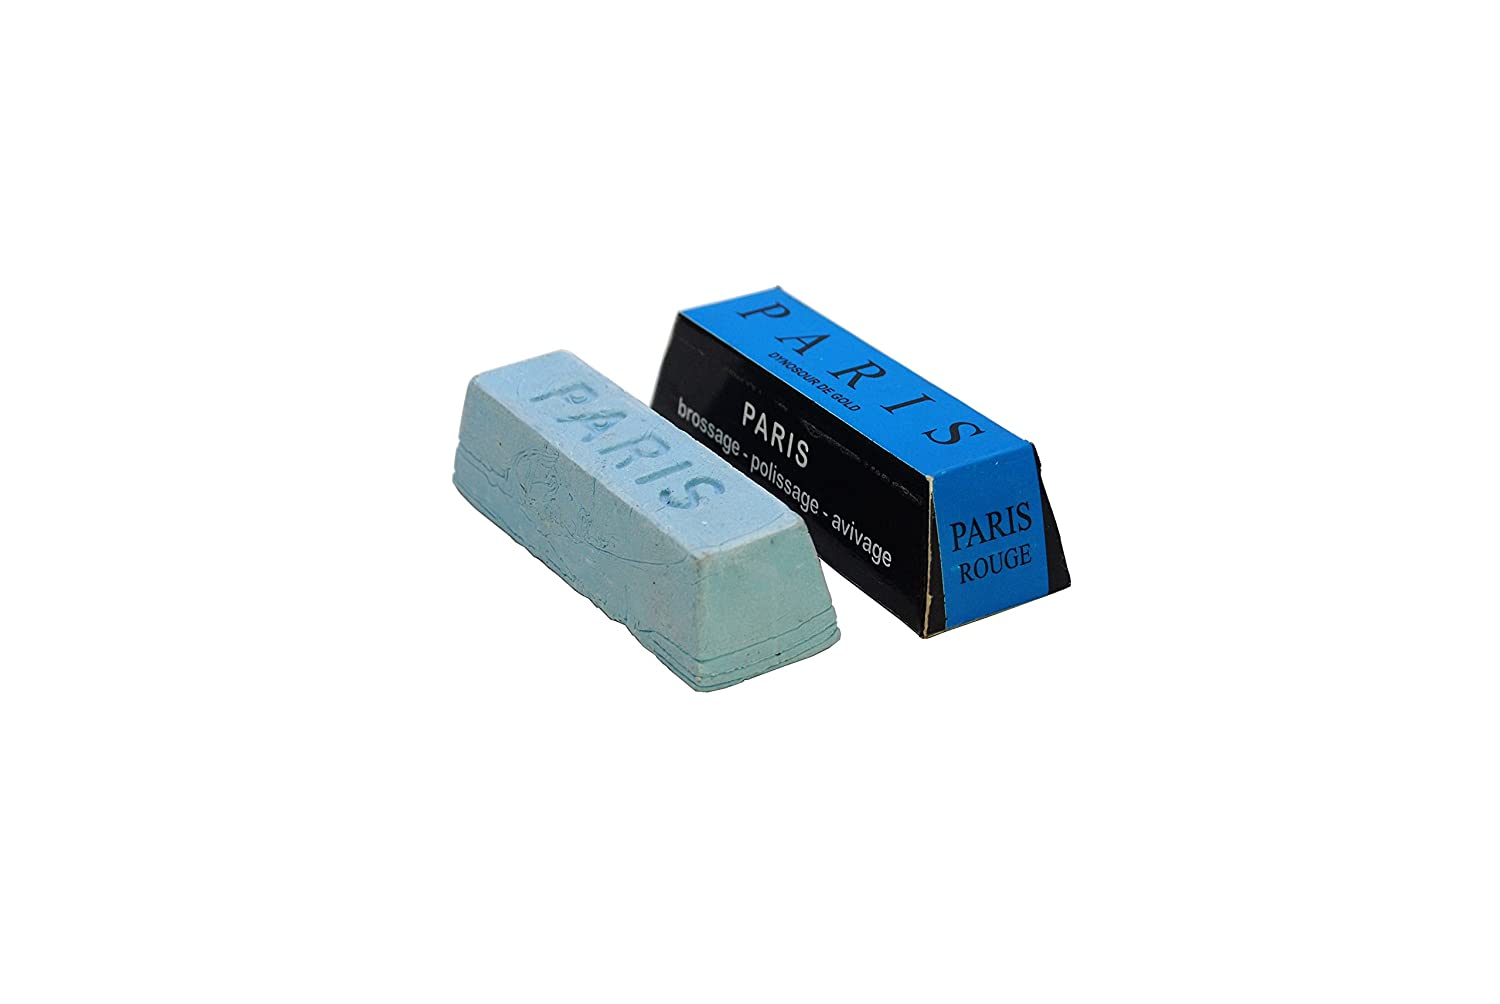 Proops Paris Small Blue Jewellers Polishing Compound Buffing Finishing Soap Bar (X8141). Free UK Postage.